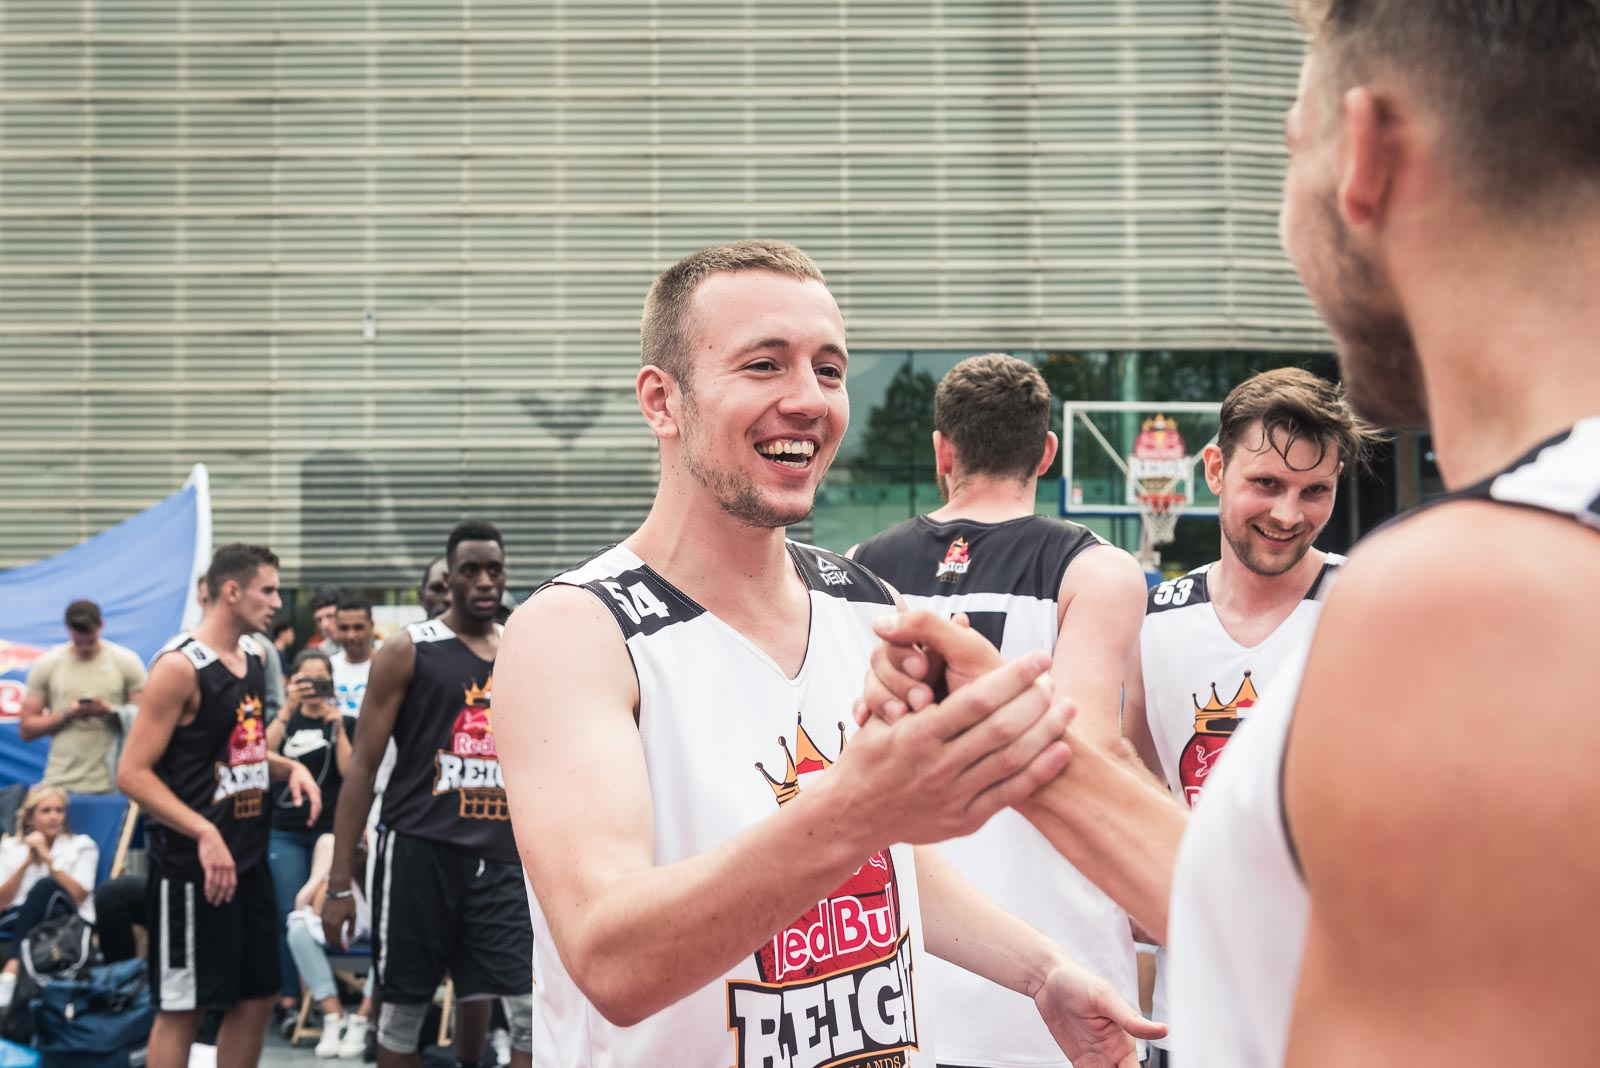 Basketball players in Rotterdam shake hands during Red Bull Reign